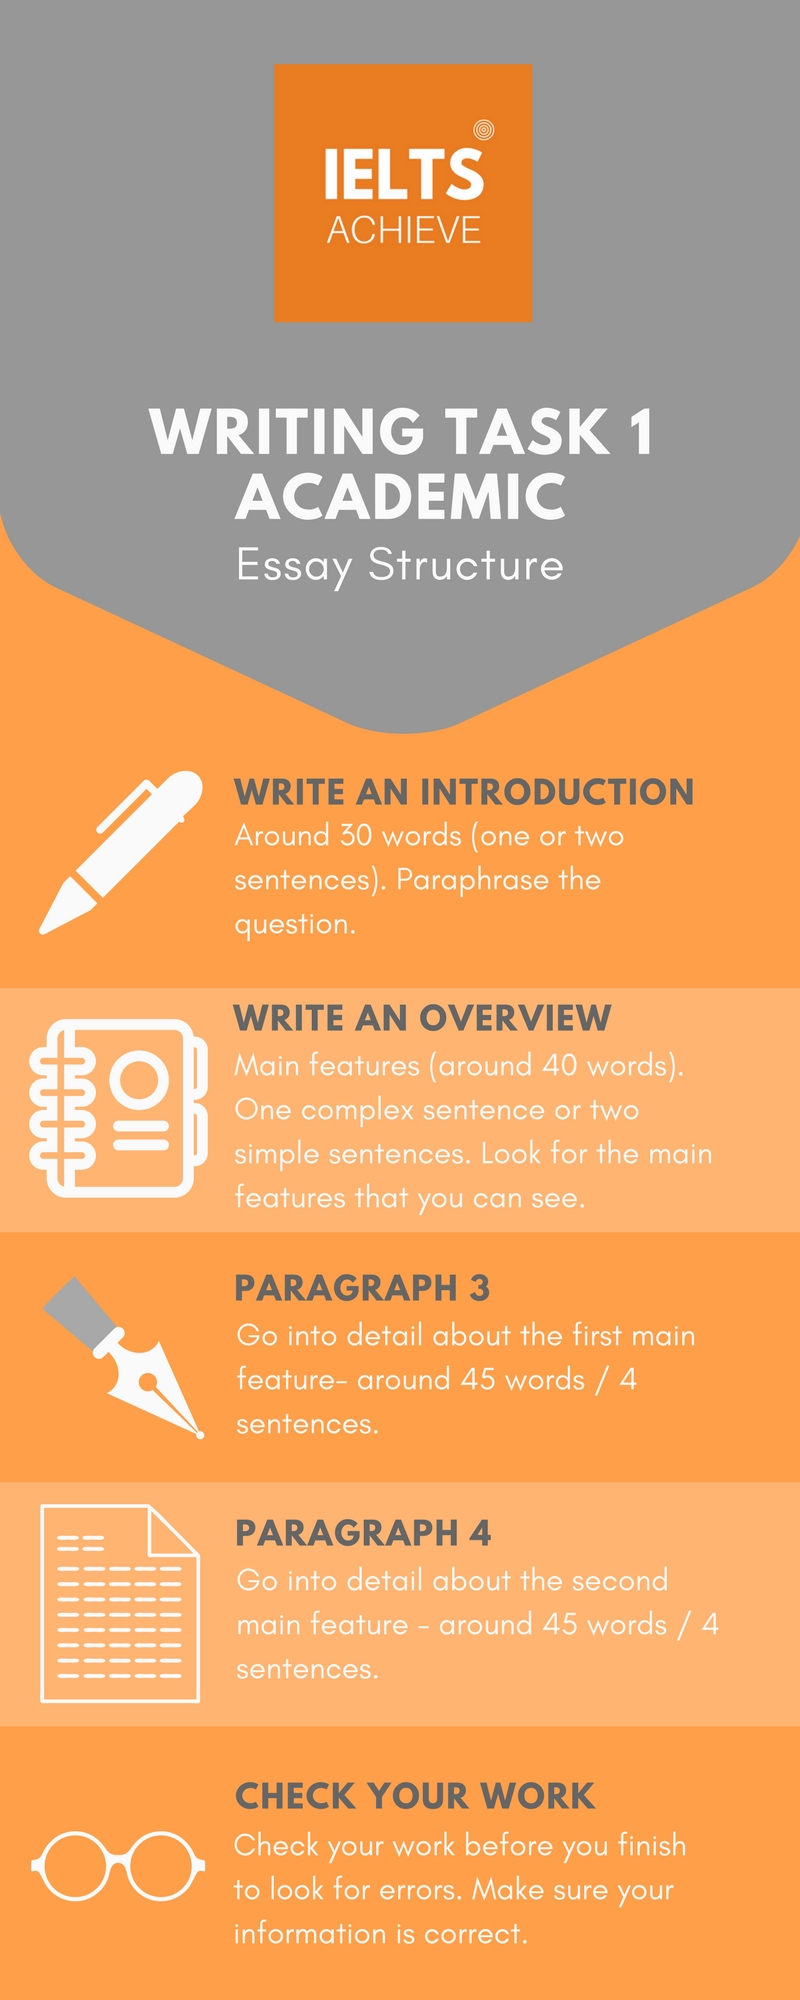 Writing Task 1 Academic Essay Structure